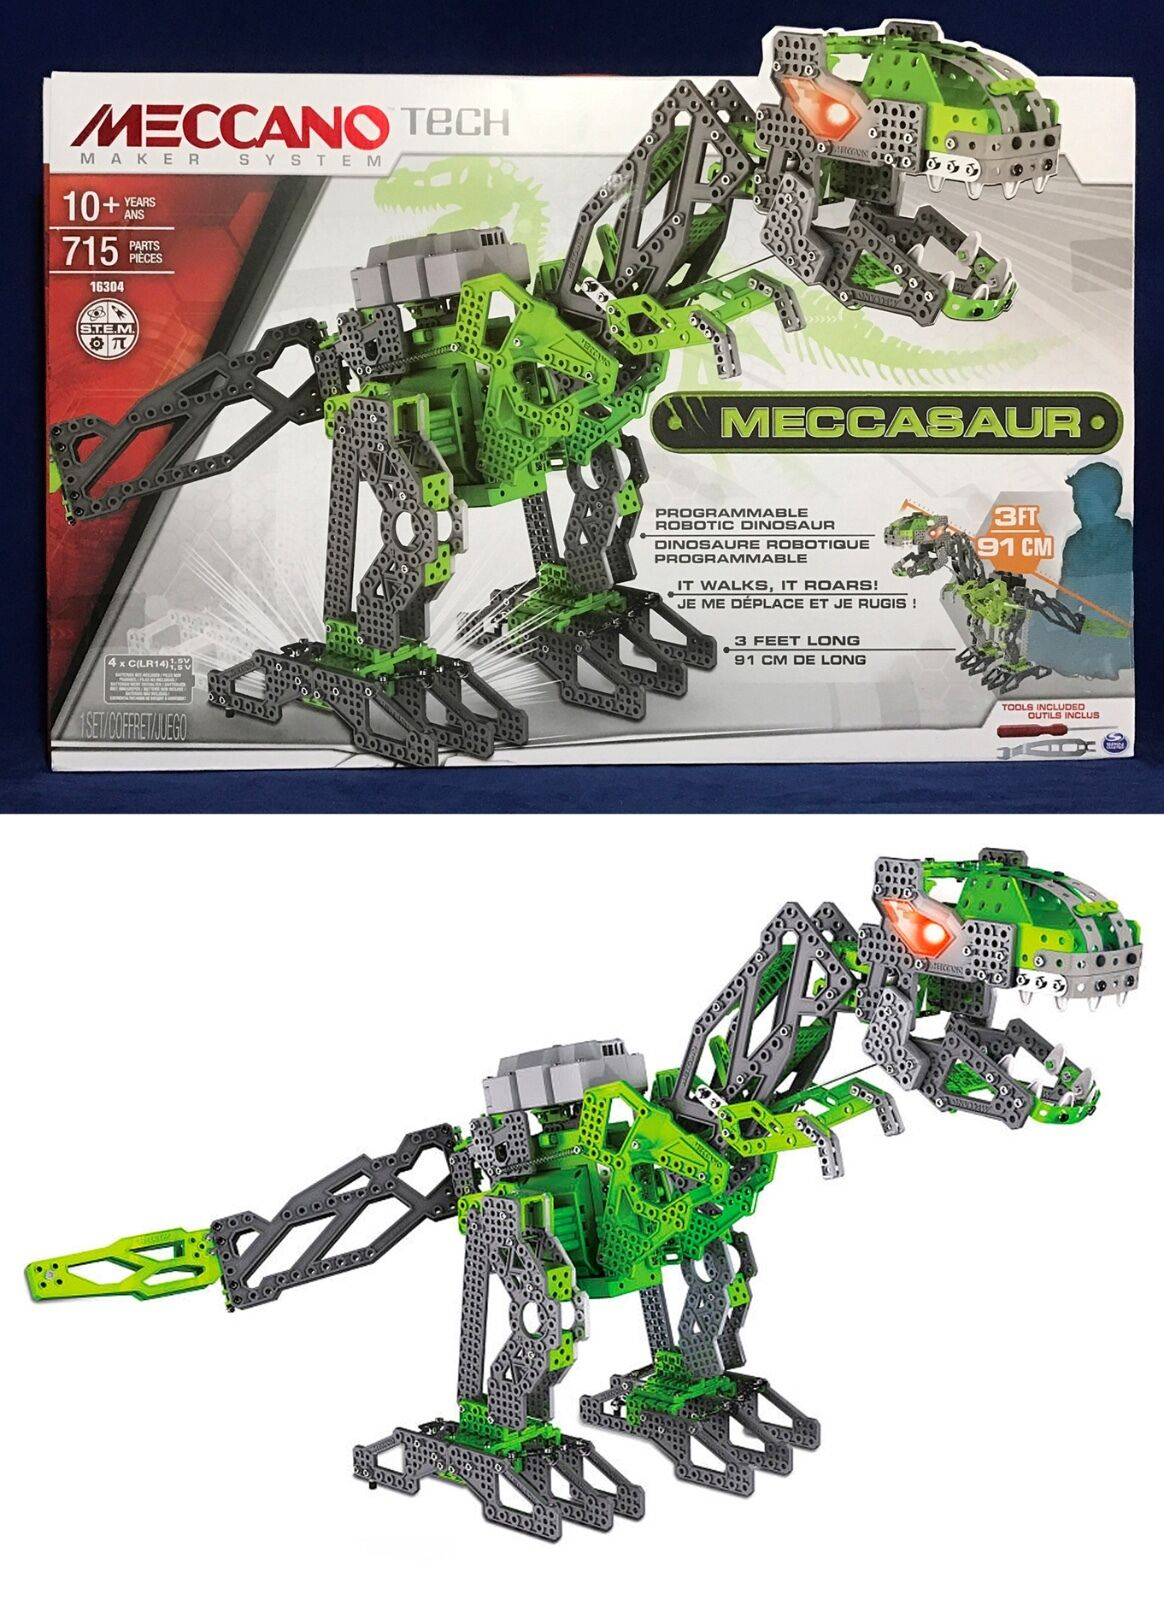 New MECCASAUR Programmable Robotic DINOSAUR Meccano Tech INTERACTIVE